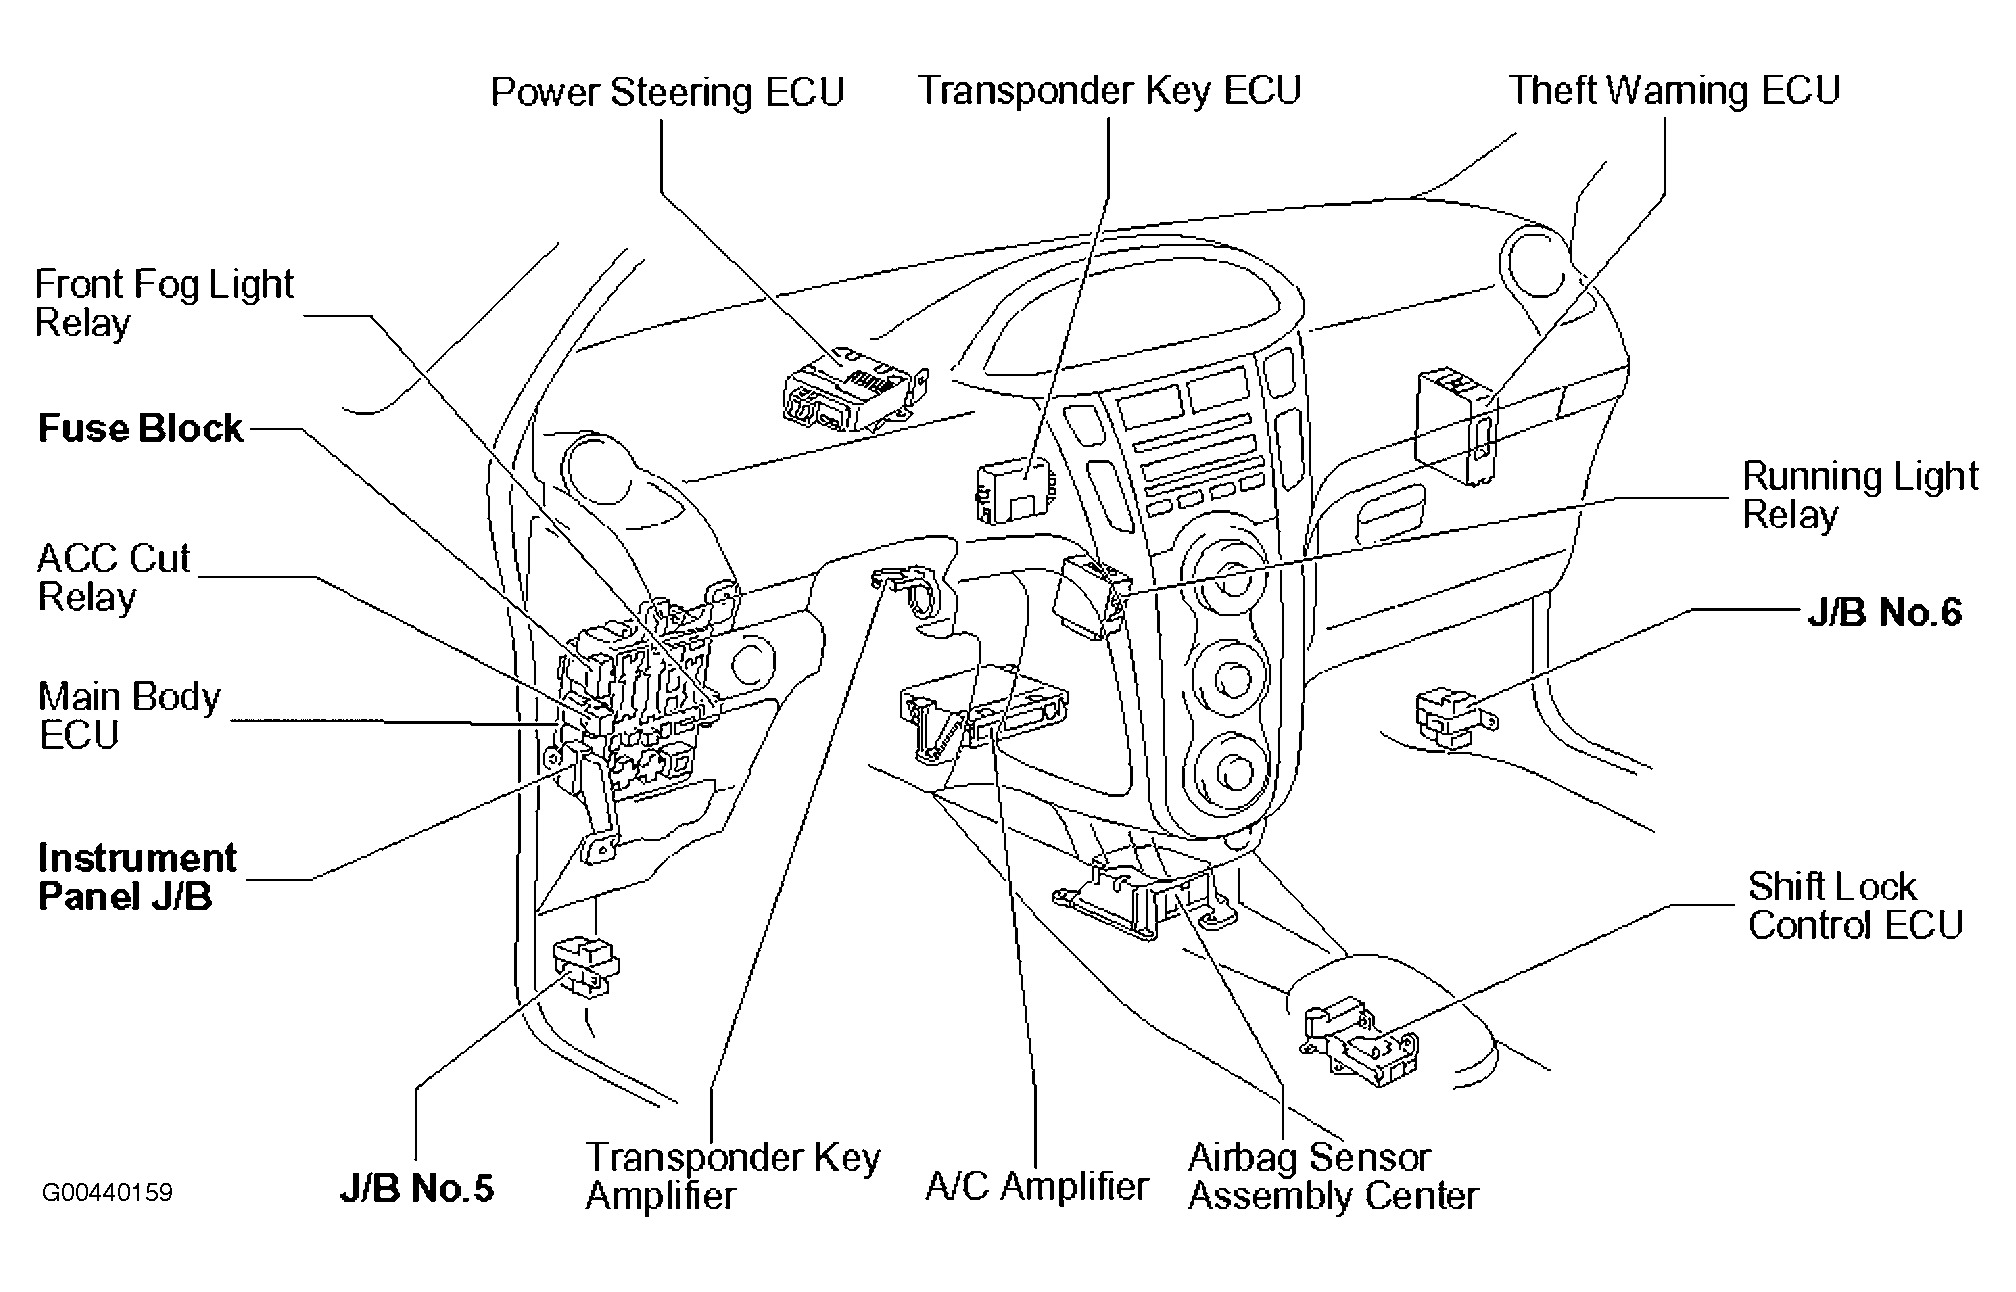 Toyota Scion Xa 2006 Fuse Box. Scion. Auto Fuse Box Diagram